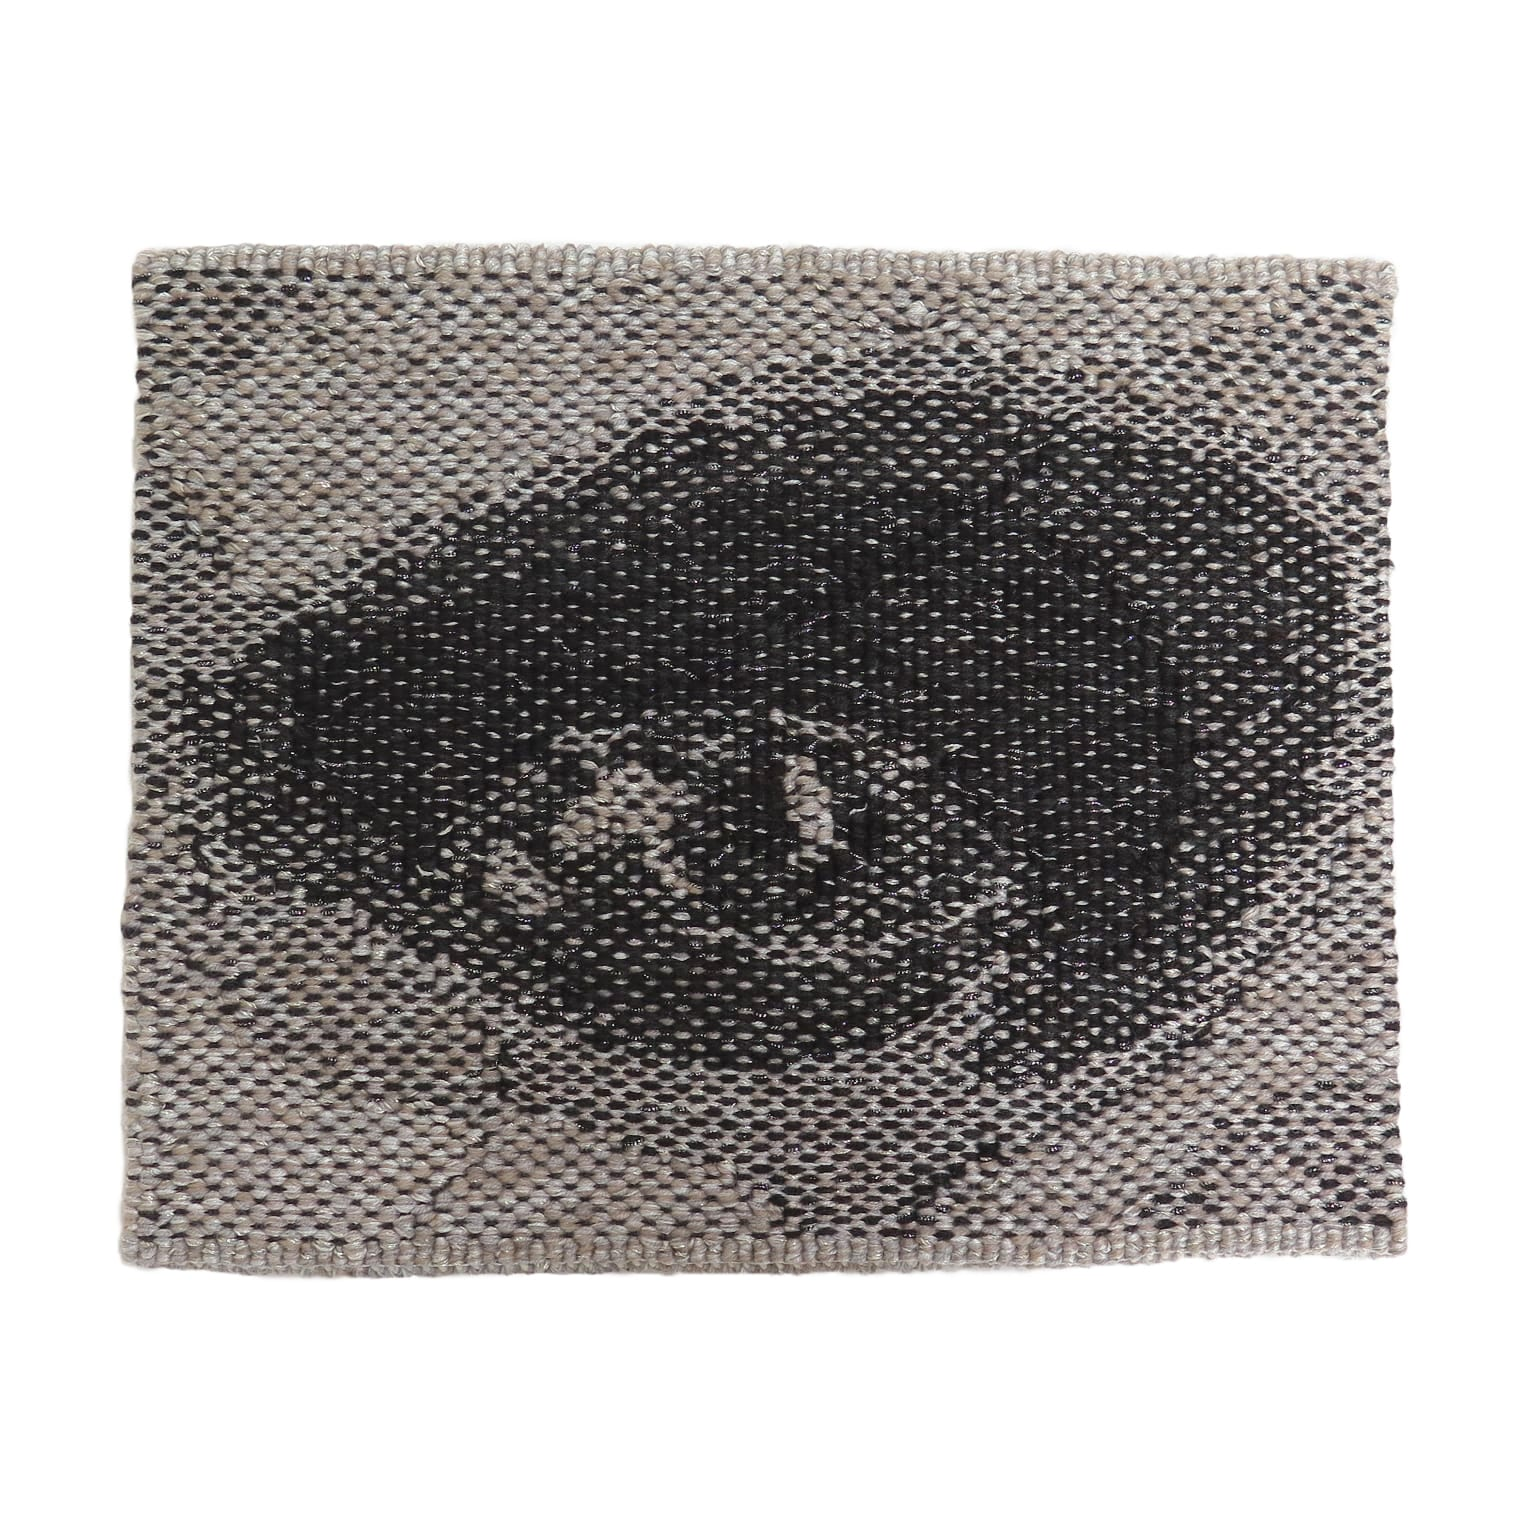 'Miili' Edition #7 designed by Brook Andrew in 2019, woven by Chris Cochius, wool, cotton, Lurex, 23.2 x 29.4cm.